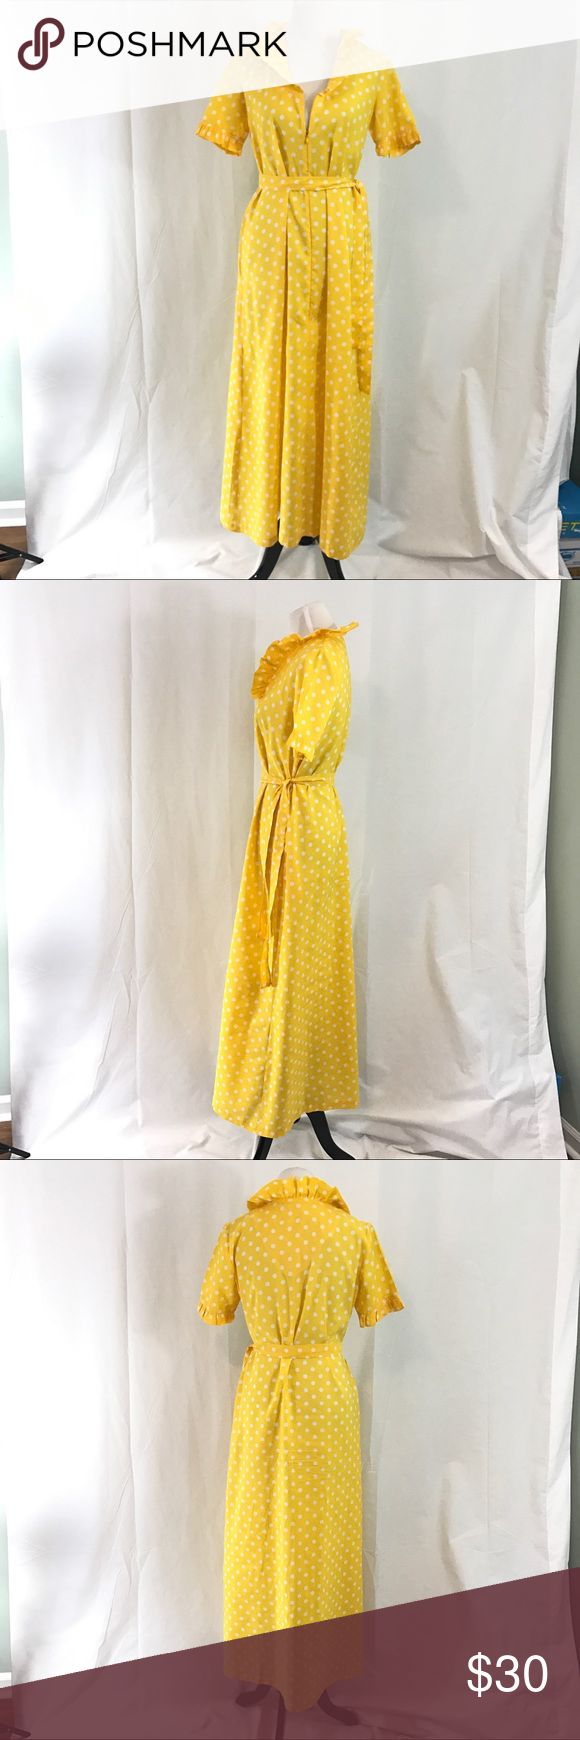 Vintage Full Length Yellow Polka Dot Maxi Dress M Vintage 196s Robe or Dress made of opaque yellow crape. Zips up the front with tie belt. Label Fifth Avenue Robes Shown on size 6 dress form. Bust 40 Waist 42 Hips 50 Length 53 ModCloth Dresses Maxi